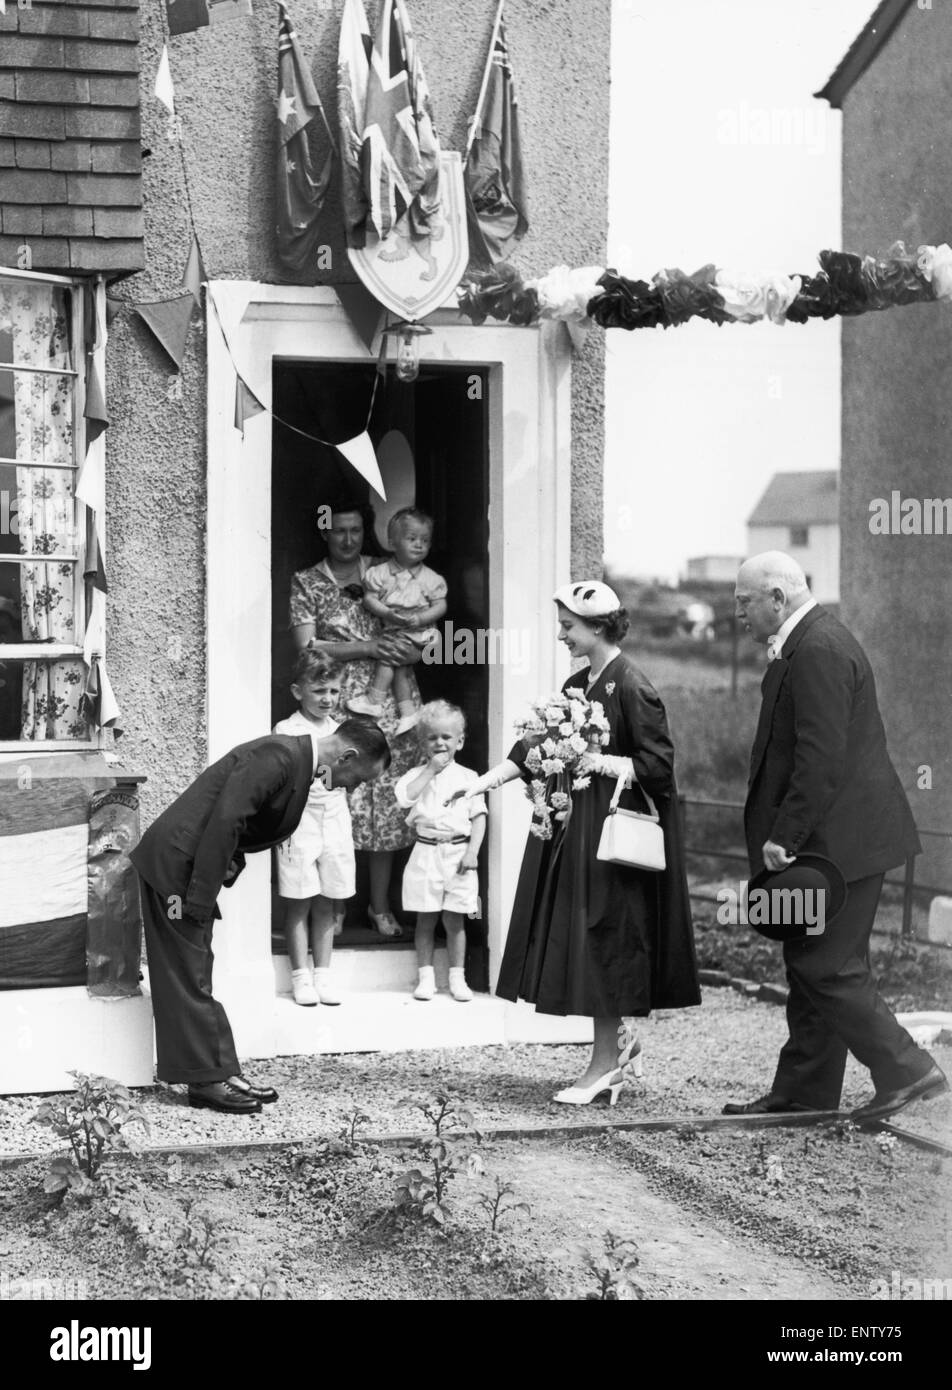 The Queen visits a war veteran during her Coronation tour of Scotland in 1953. - Stock Image